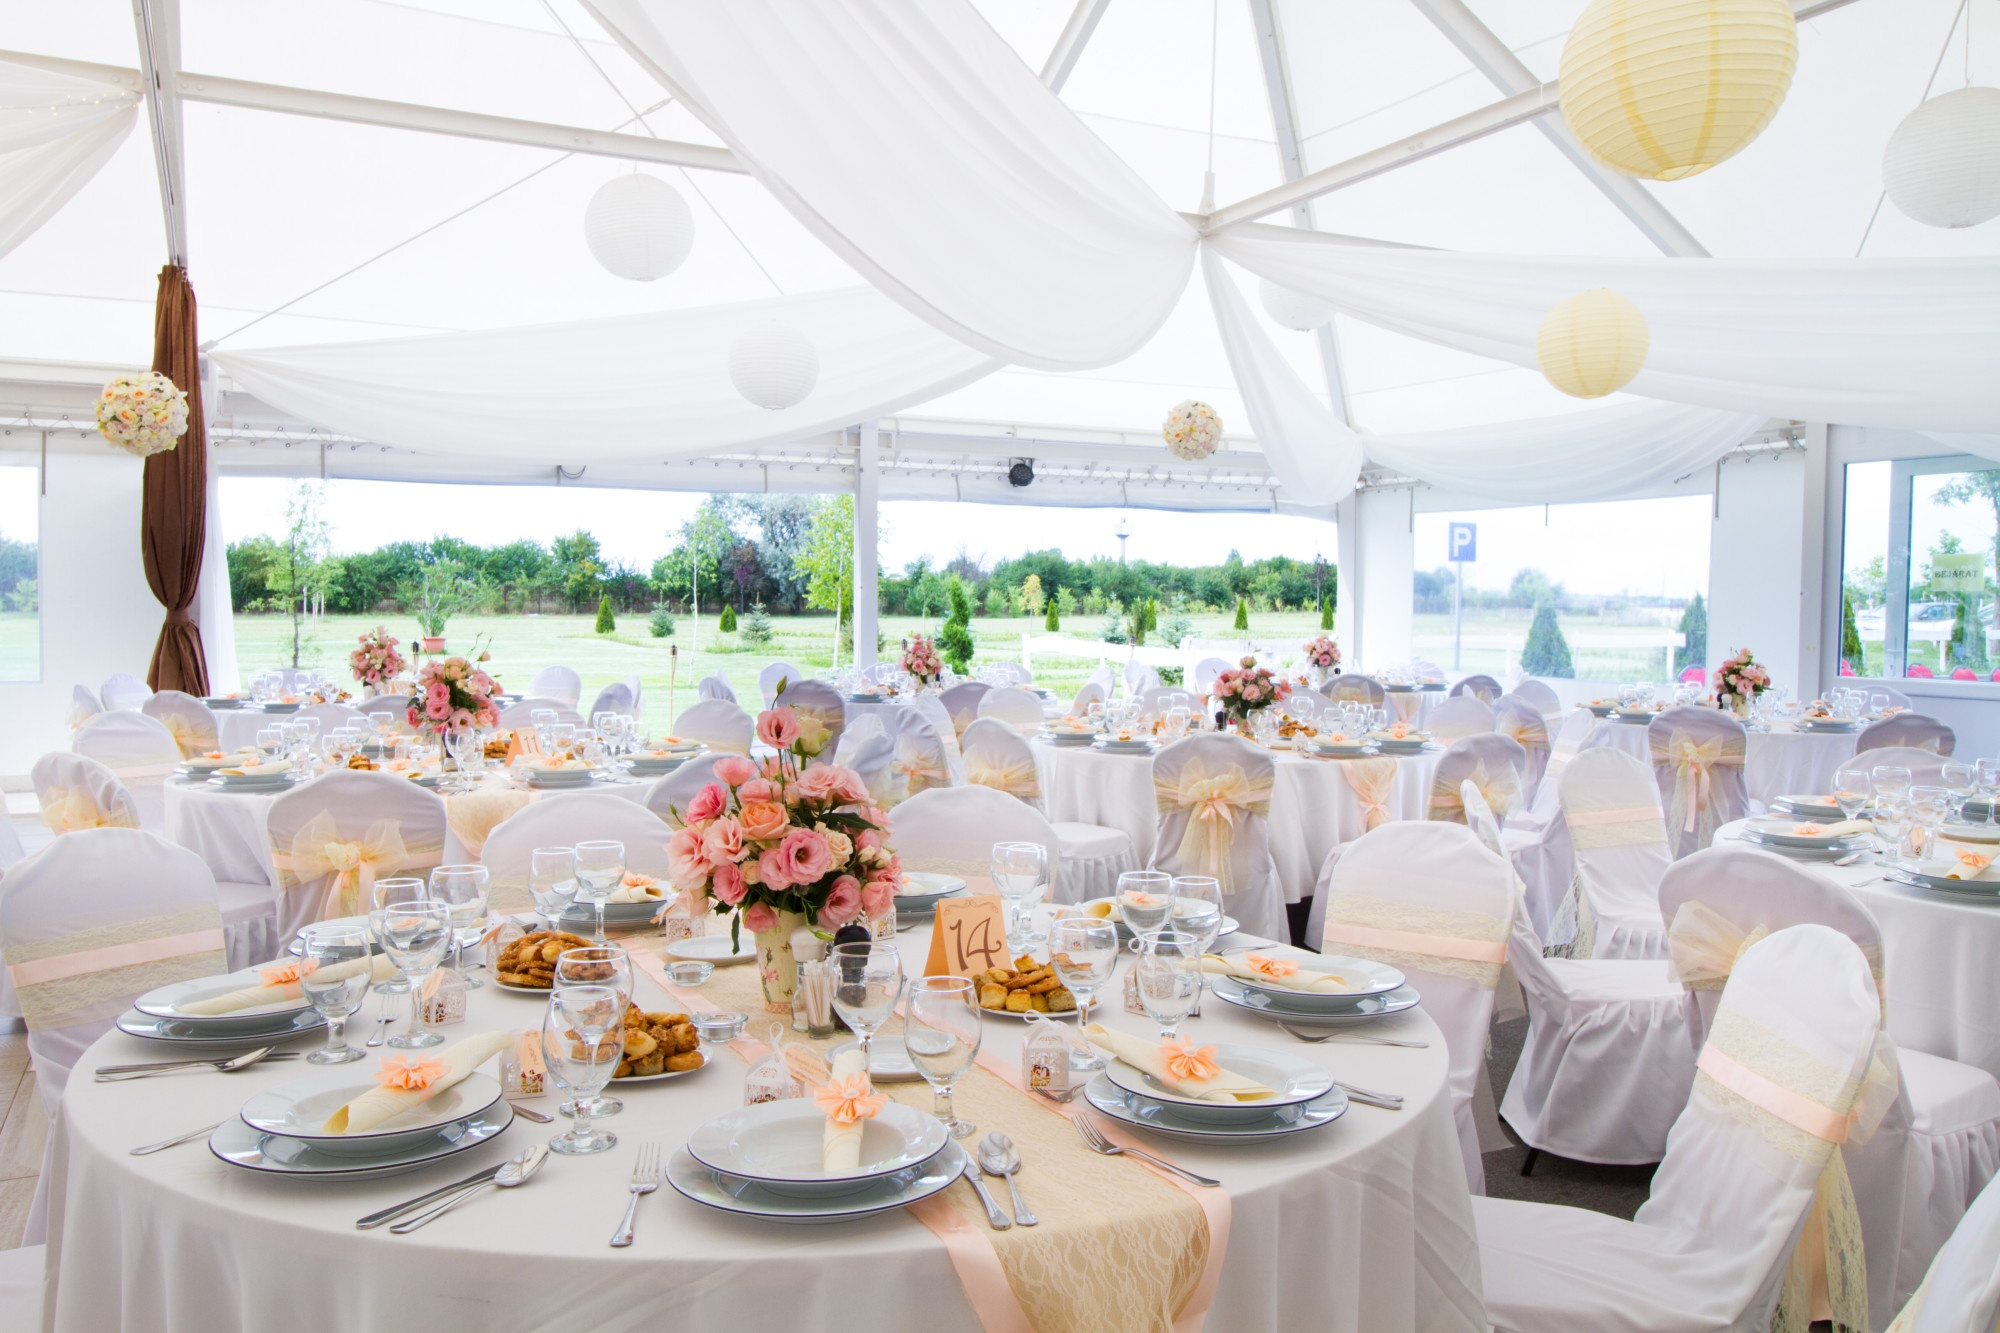 Renting a Party Canopy: What You Need to Know